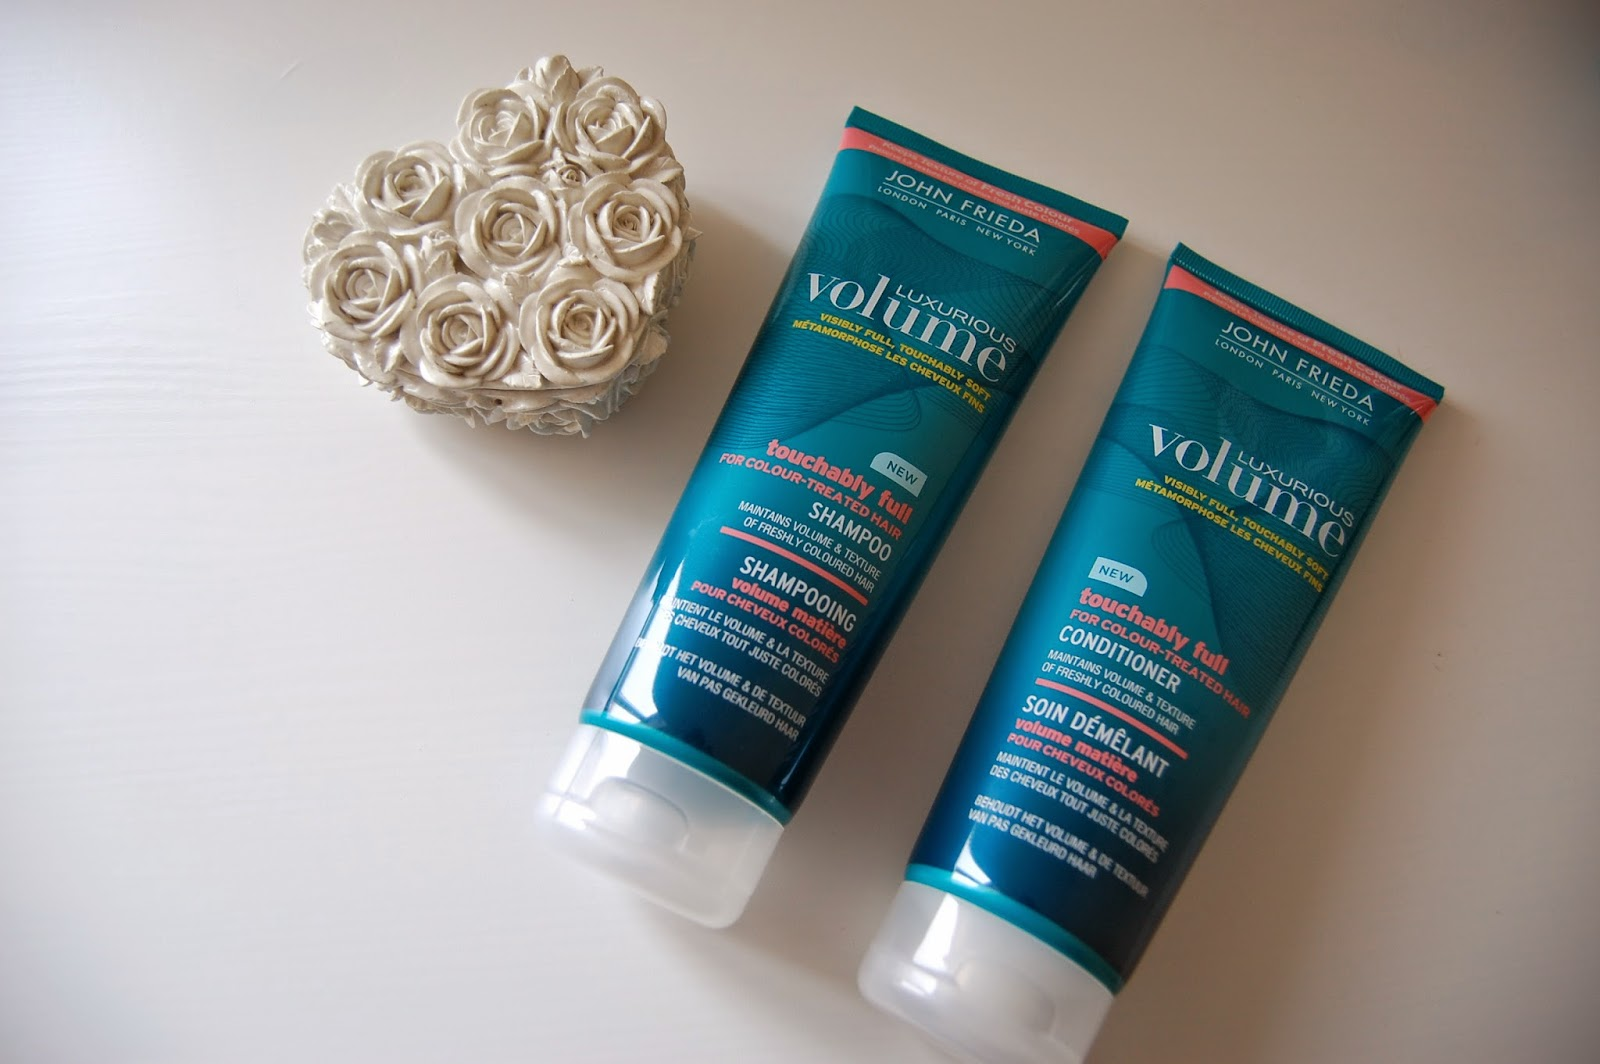 John Frieda Luxurious Volume Shampoo and Conditioner